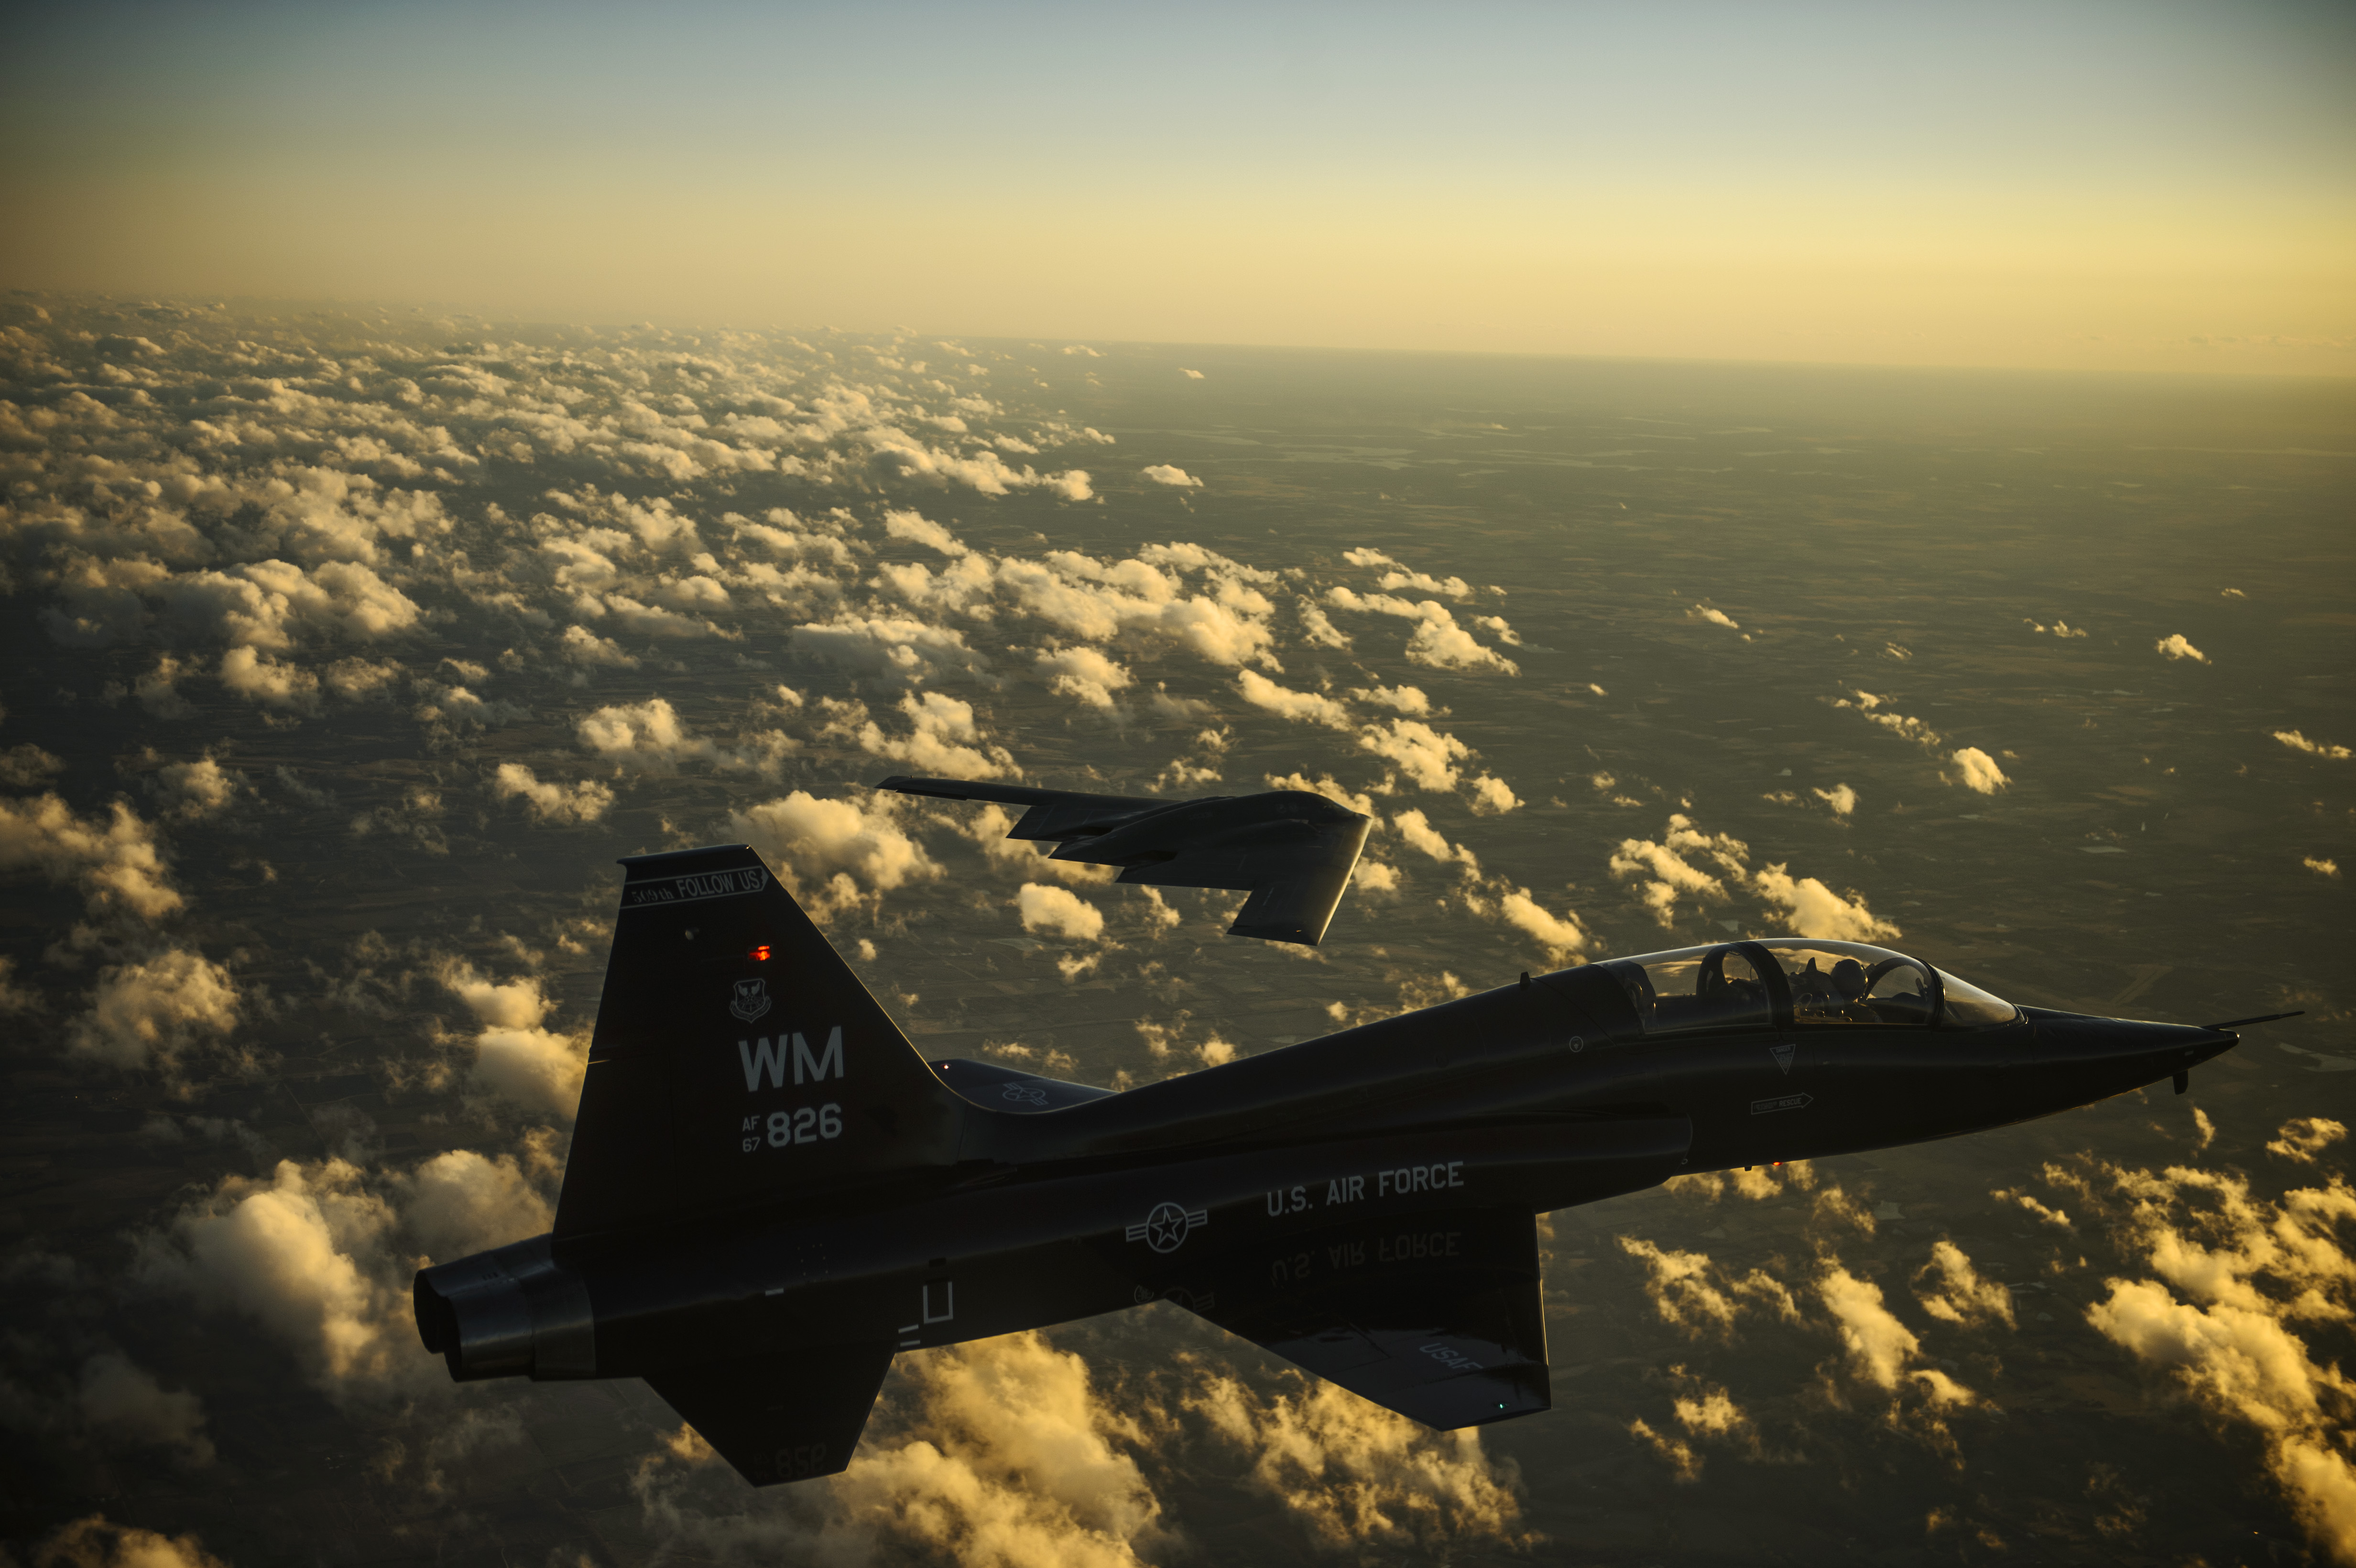 A U.S. Air Force T-38 Talon aircraft and B-2 Spirit aircraft fly in formation during a training mission over Whiteman Air Force Base, Mo., Feb. 20, 2014 140220-F-RH756-606.jpg